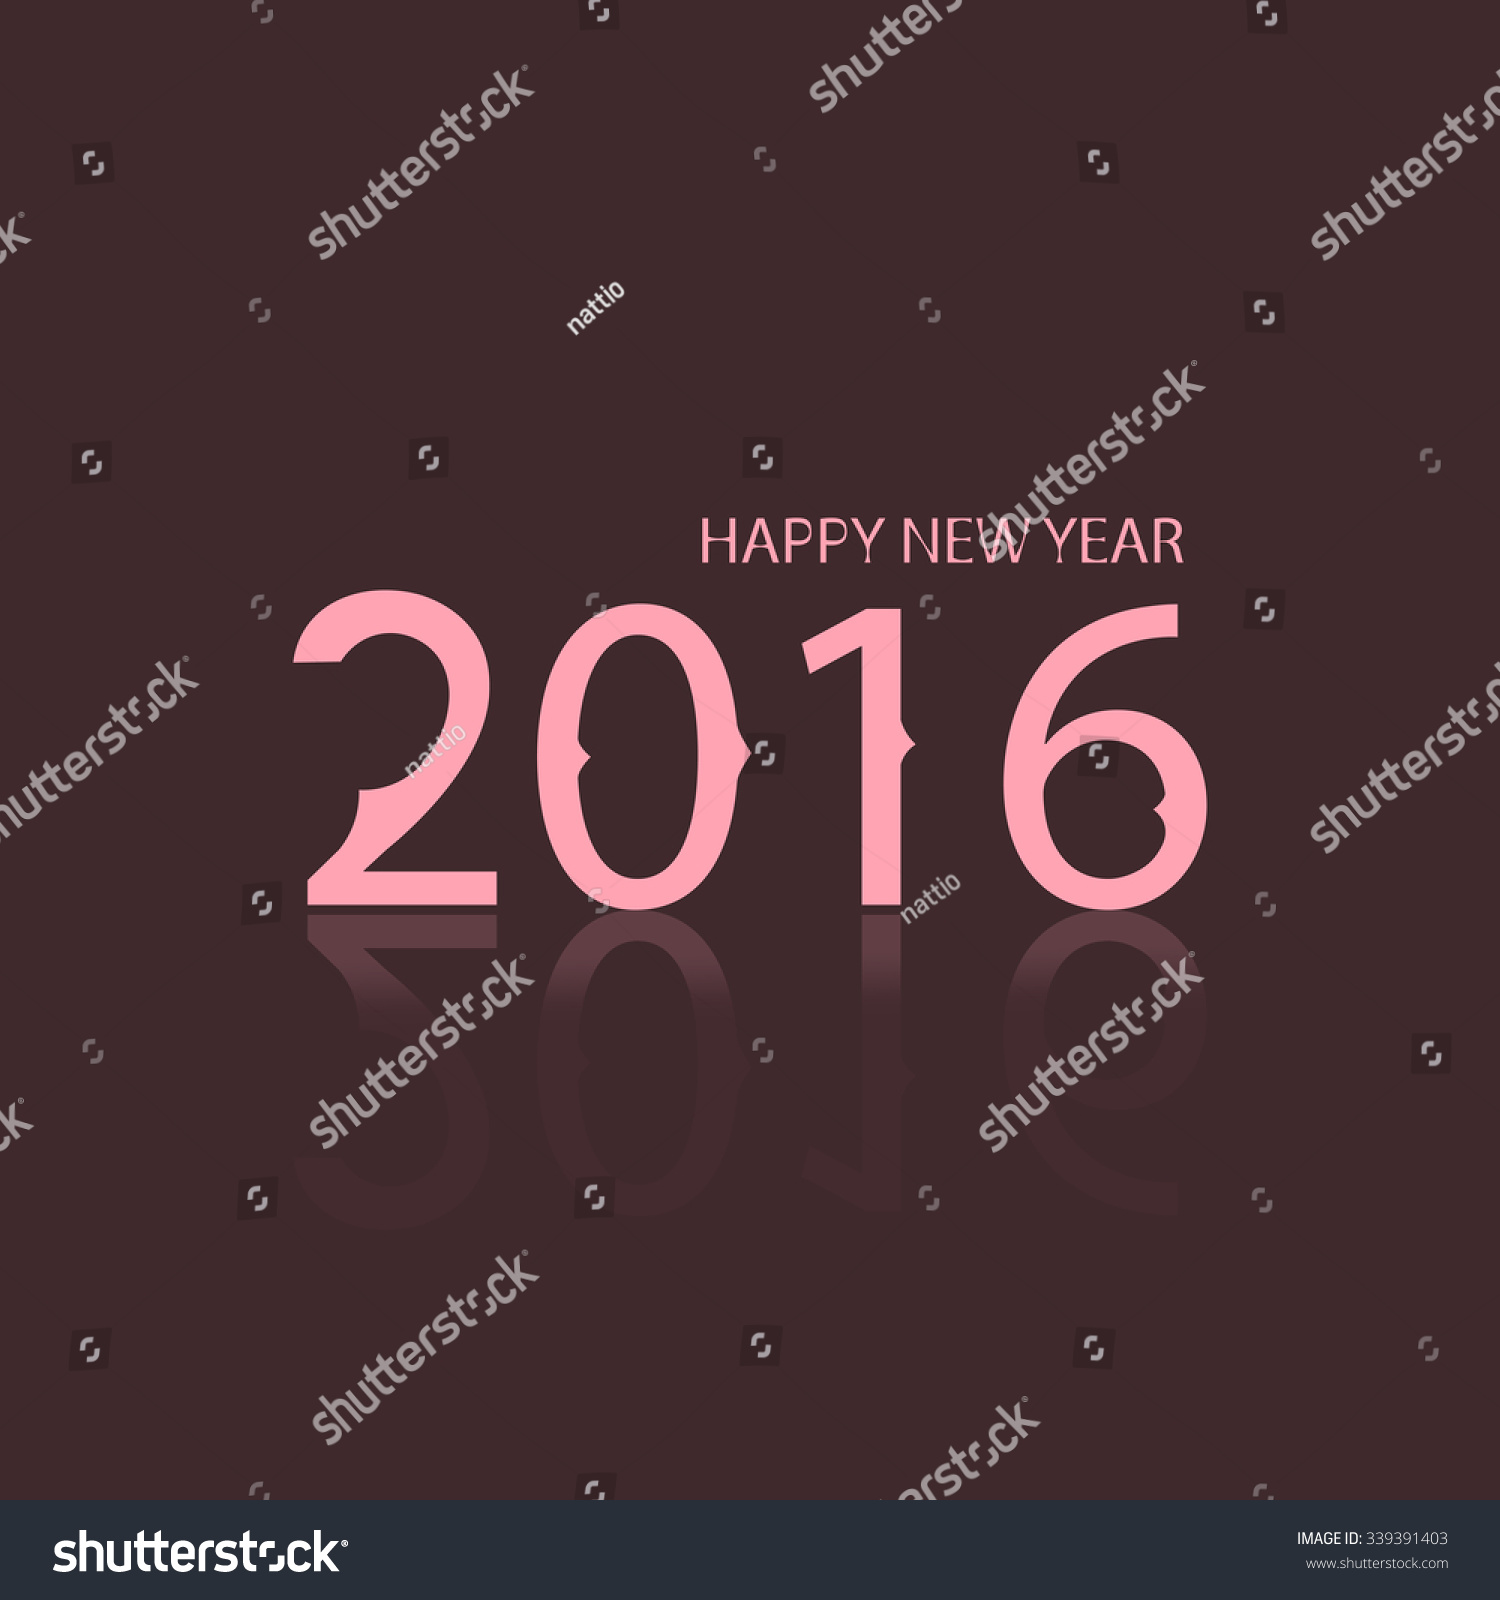 Happy New Year 2016, Beautiful Simple Greeting Card Stock ...